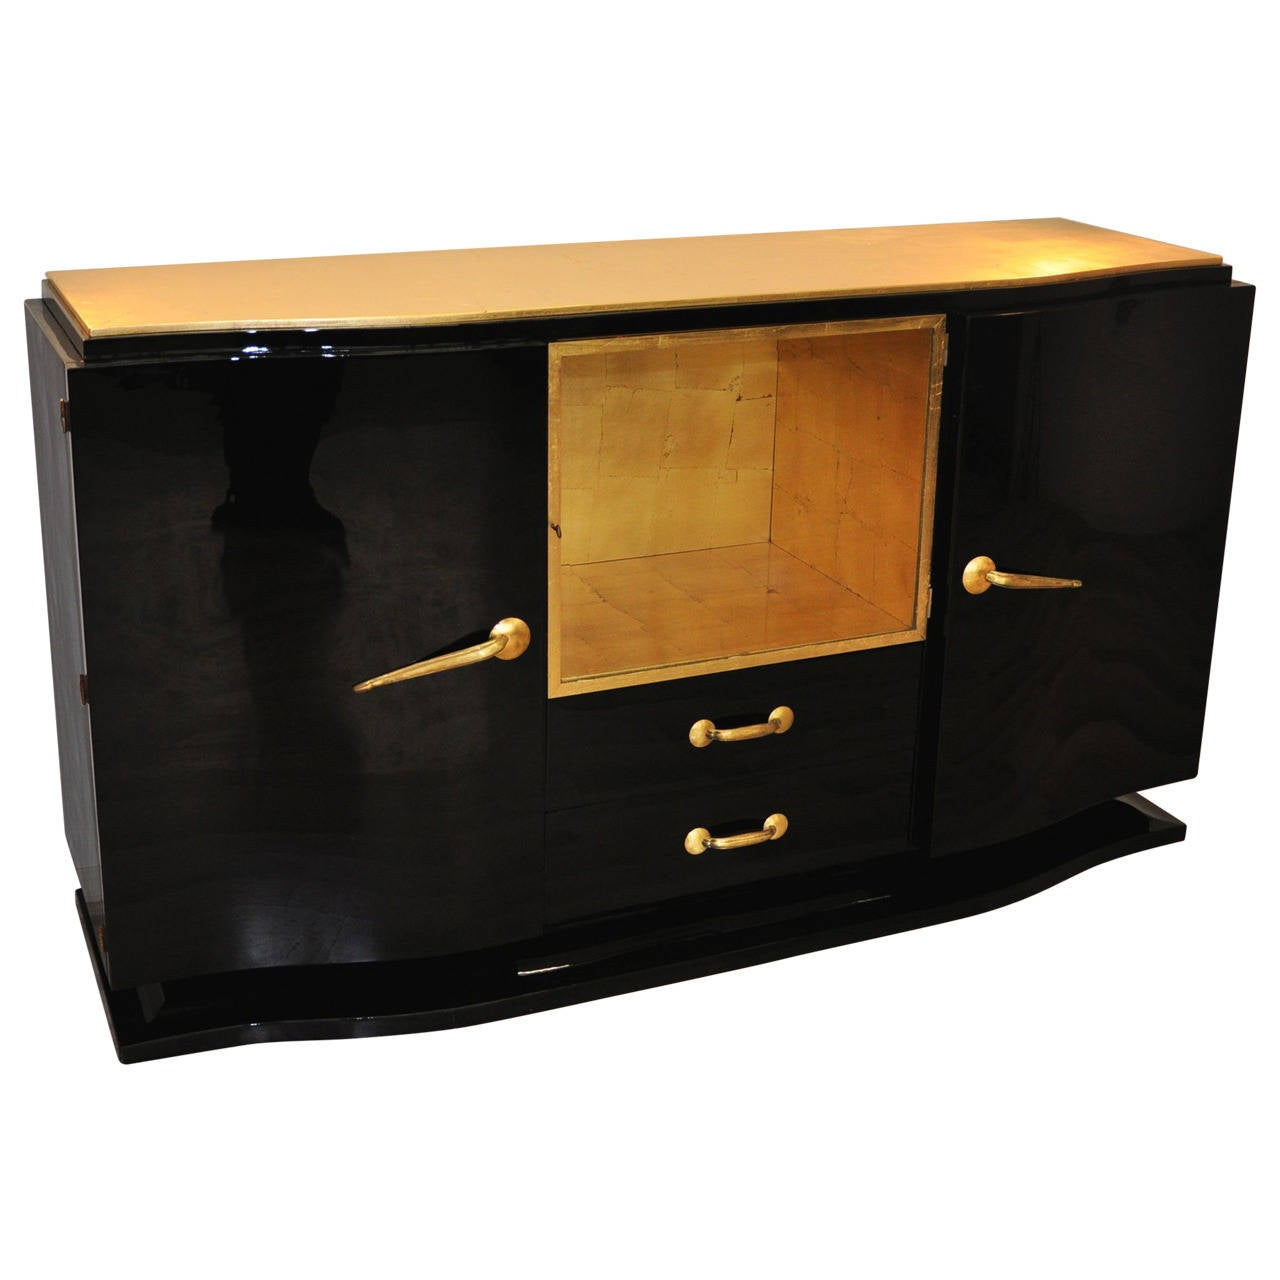 Black and gold art deco sideboard for sale at 1stdibs for Sideboard gold